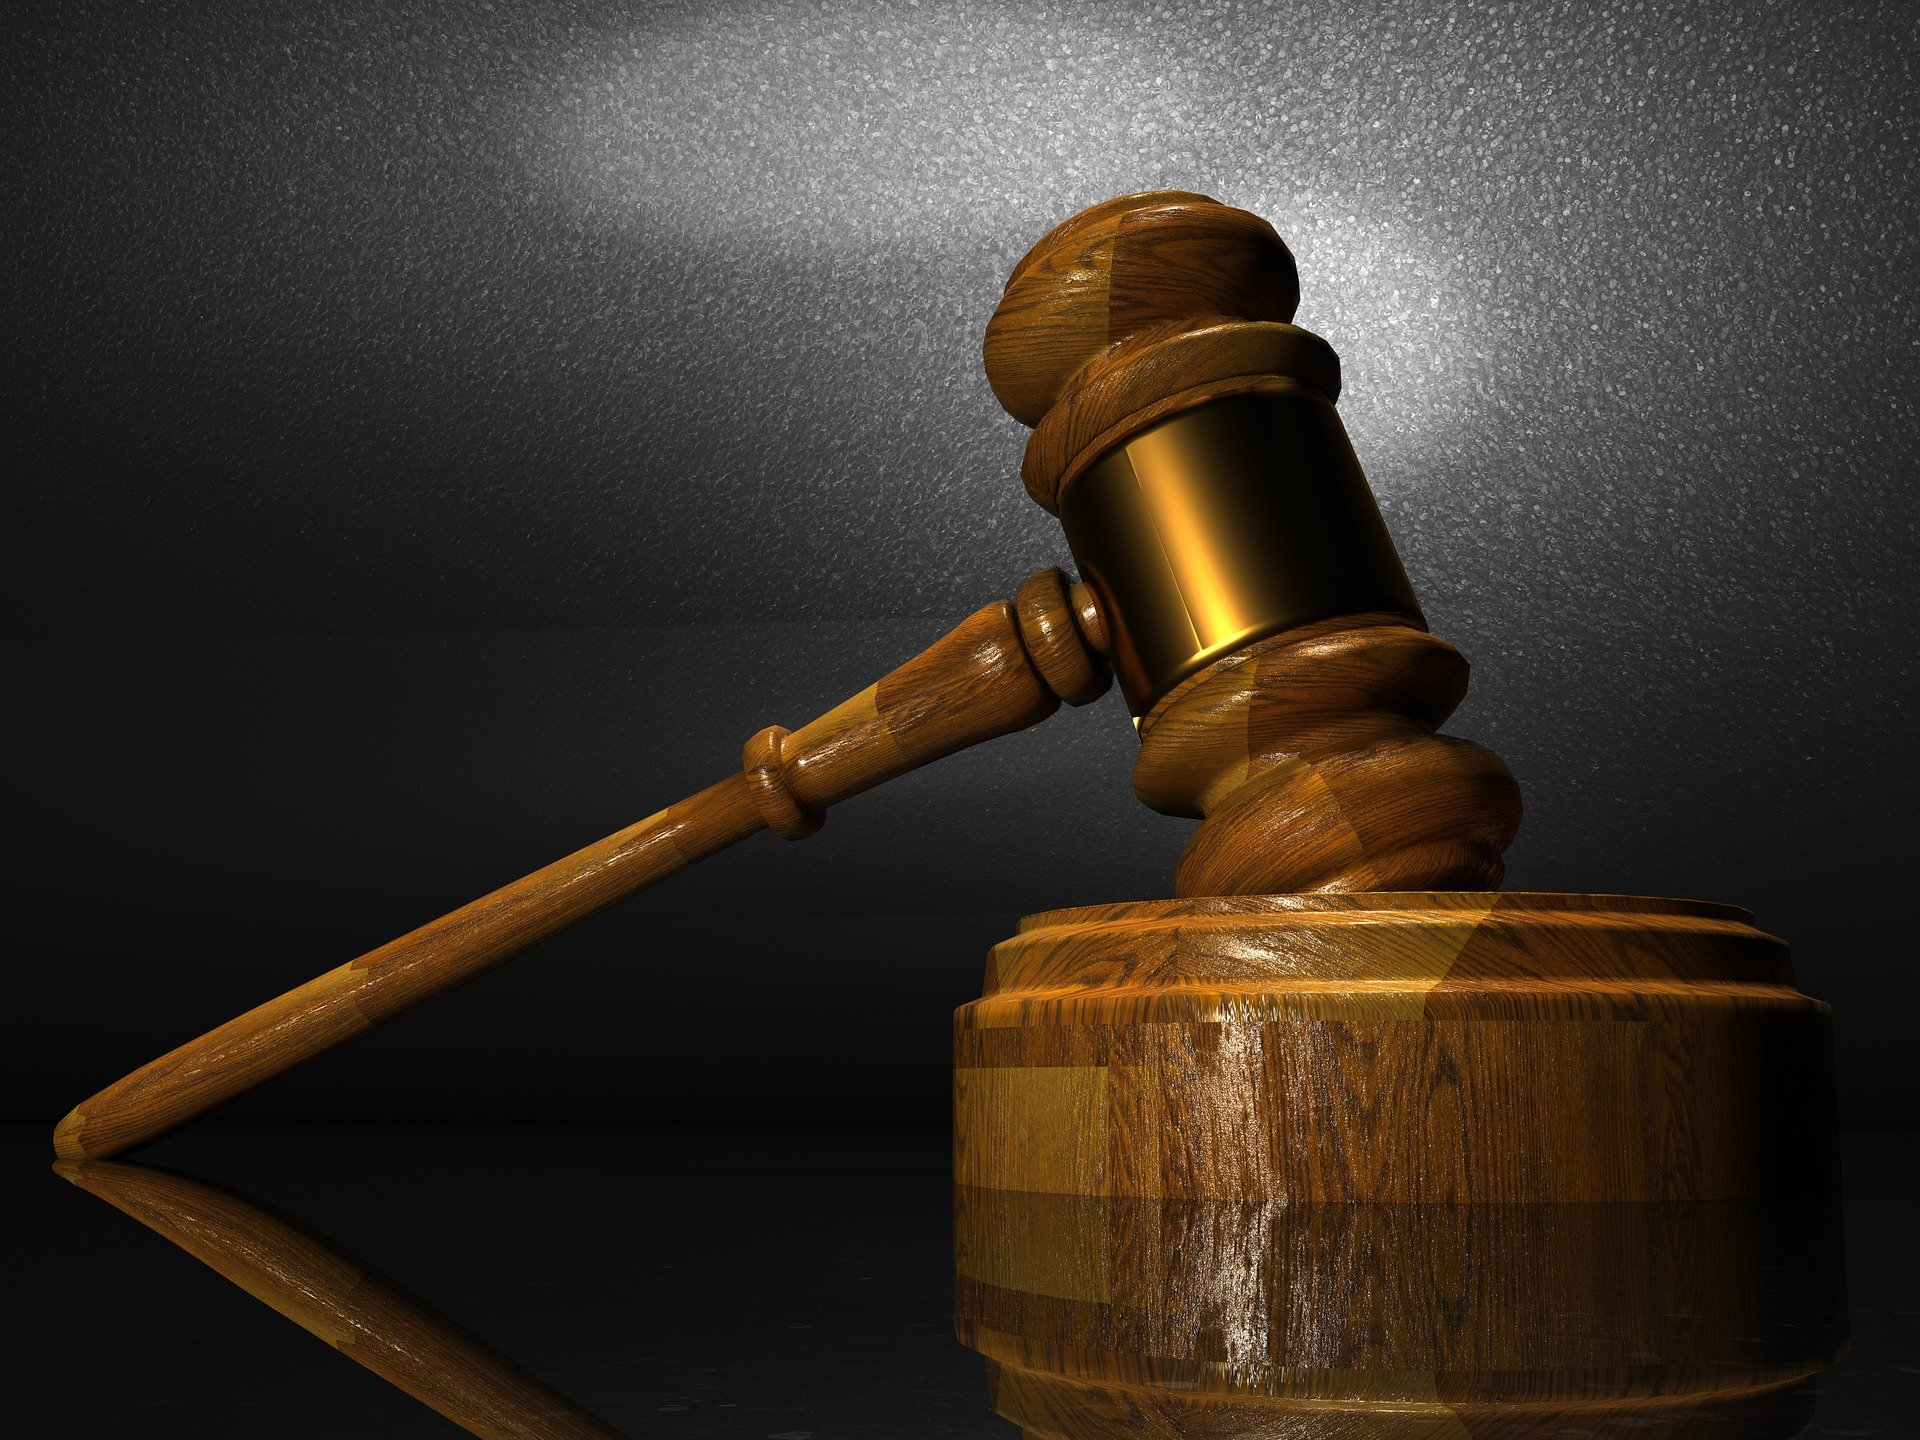 Pictured - A gavel used by a judge in a court of law   Source: Pixabay